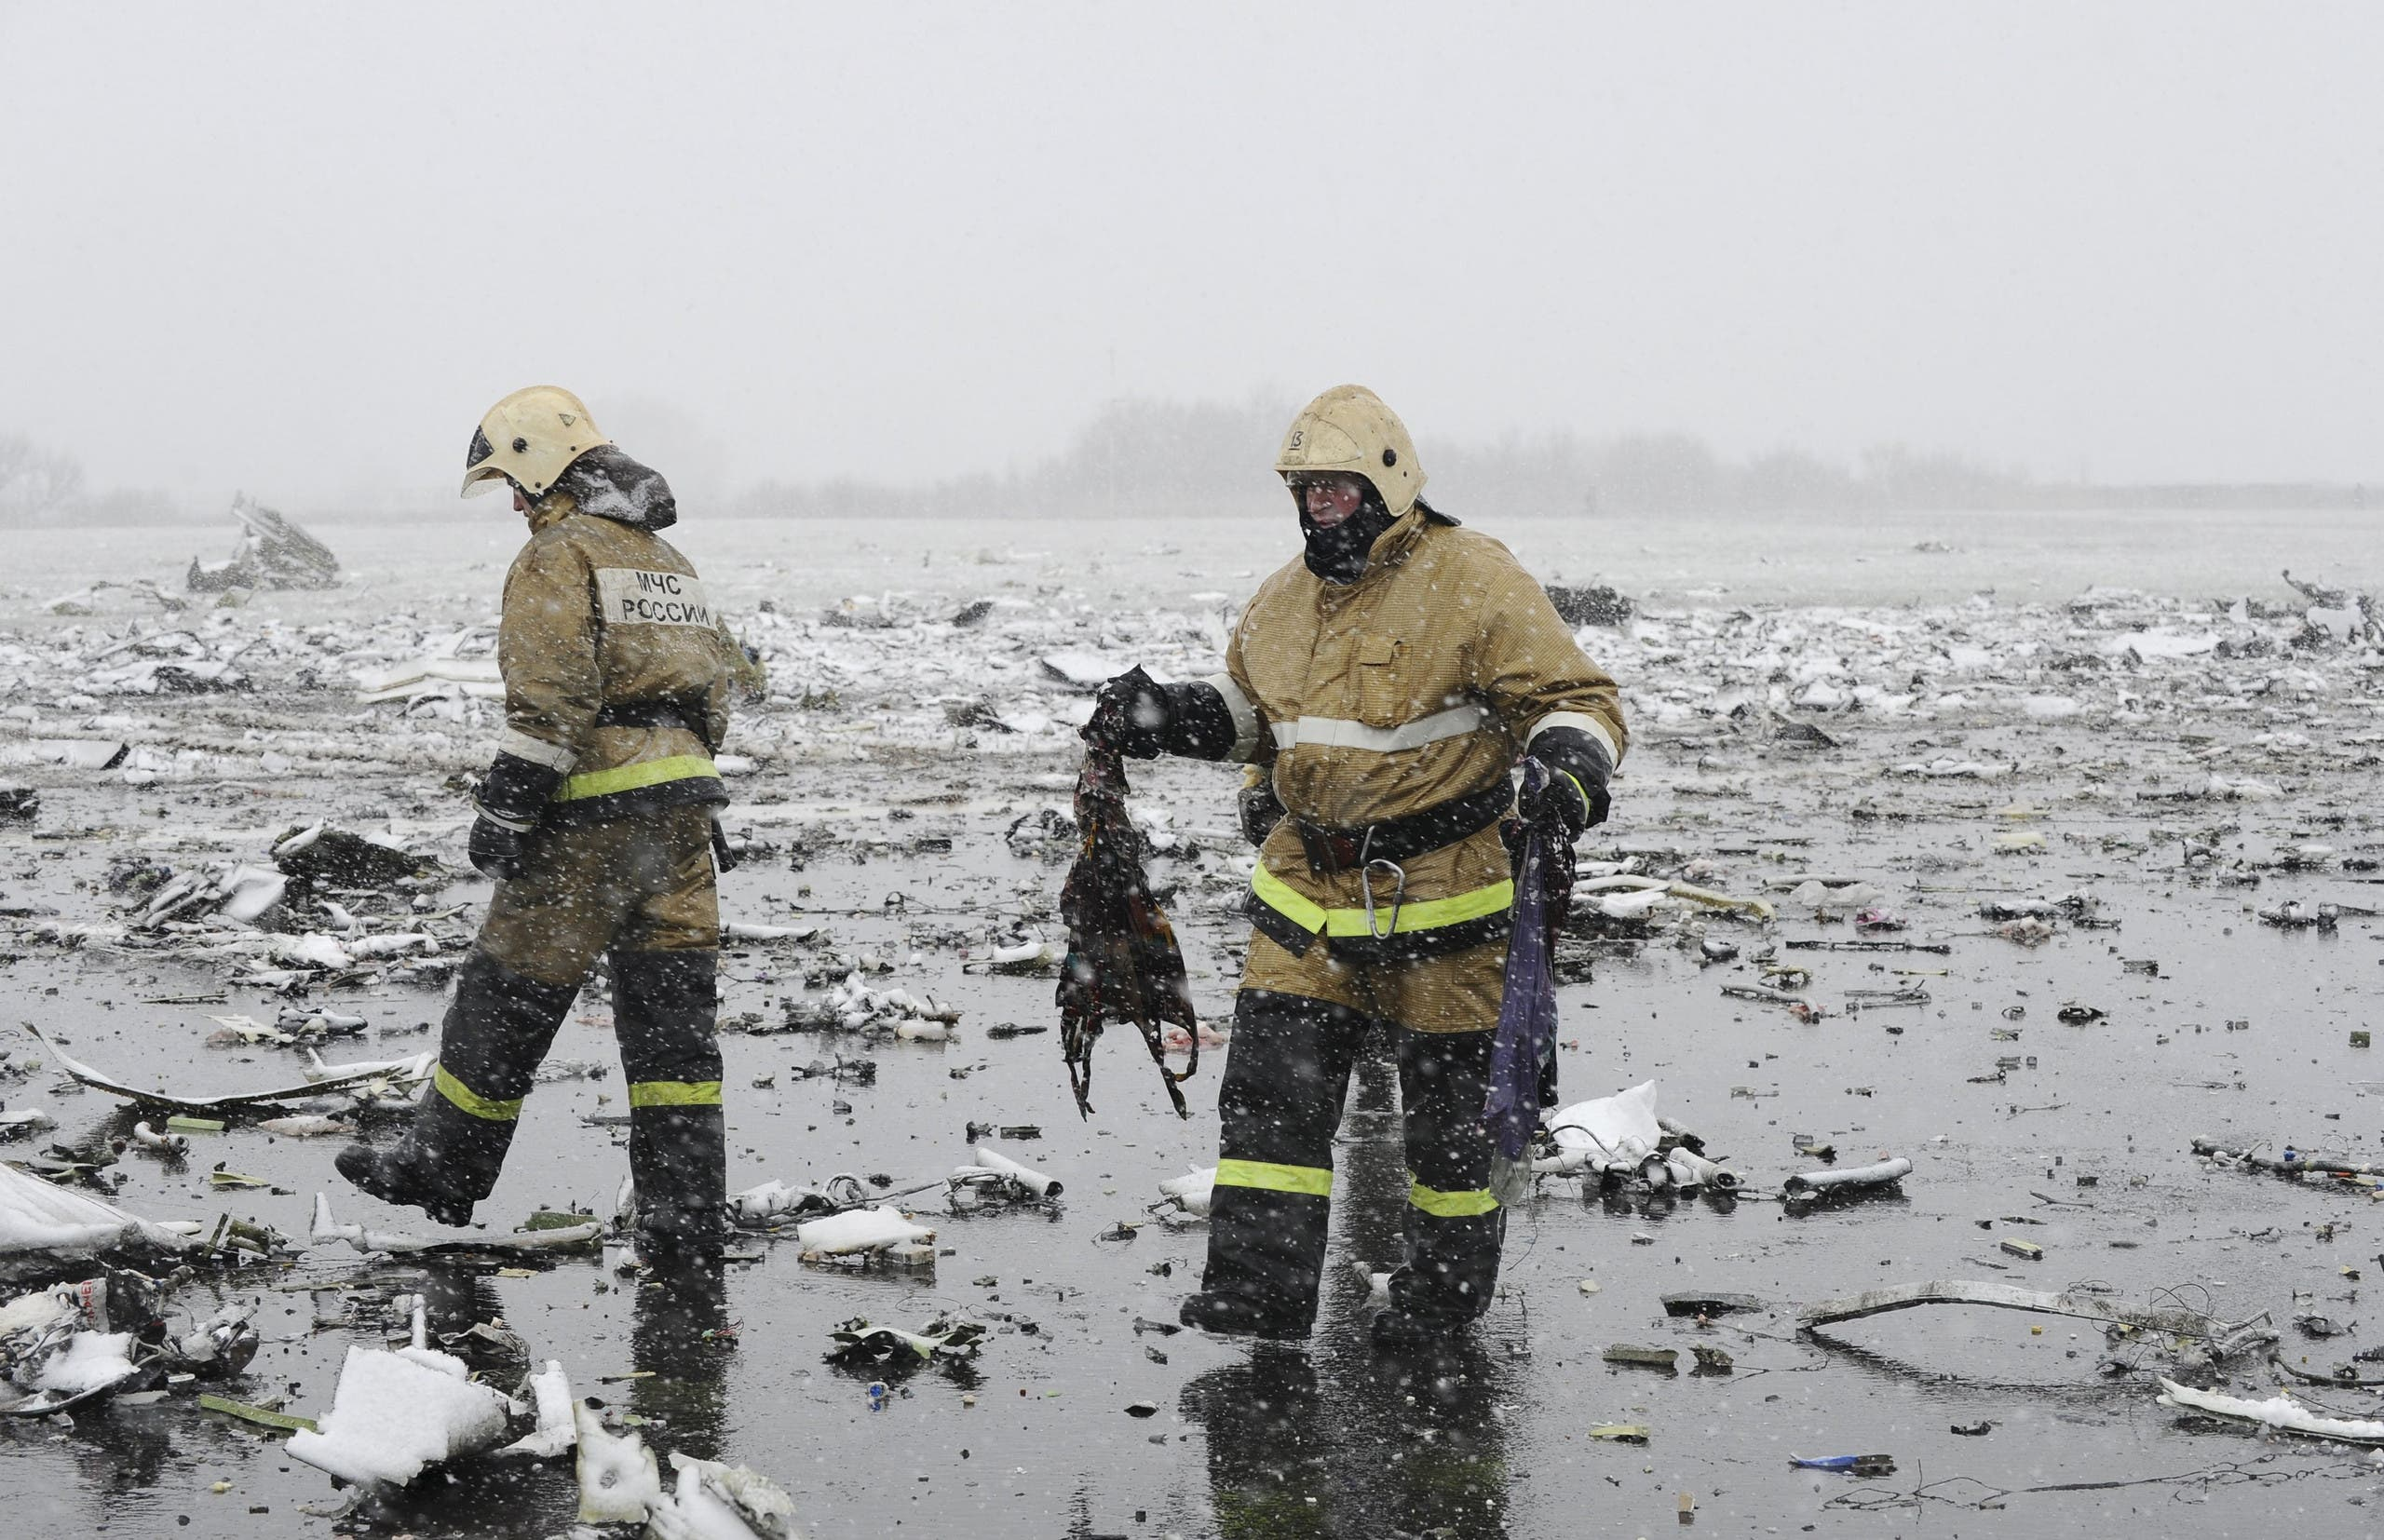 Flydubai flight crashes in Russia, killing 62 - Al Arabiya